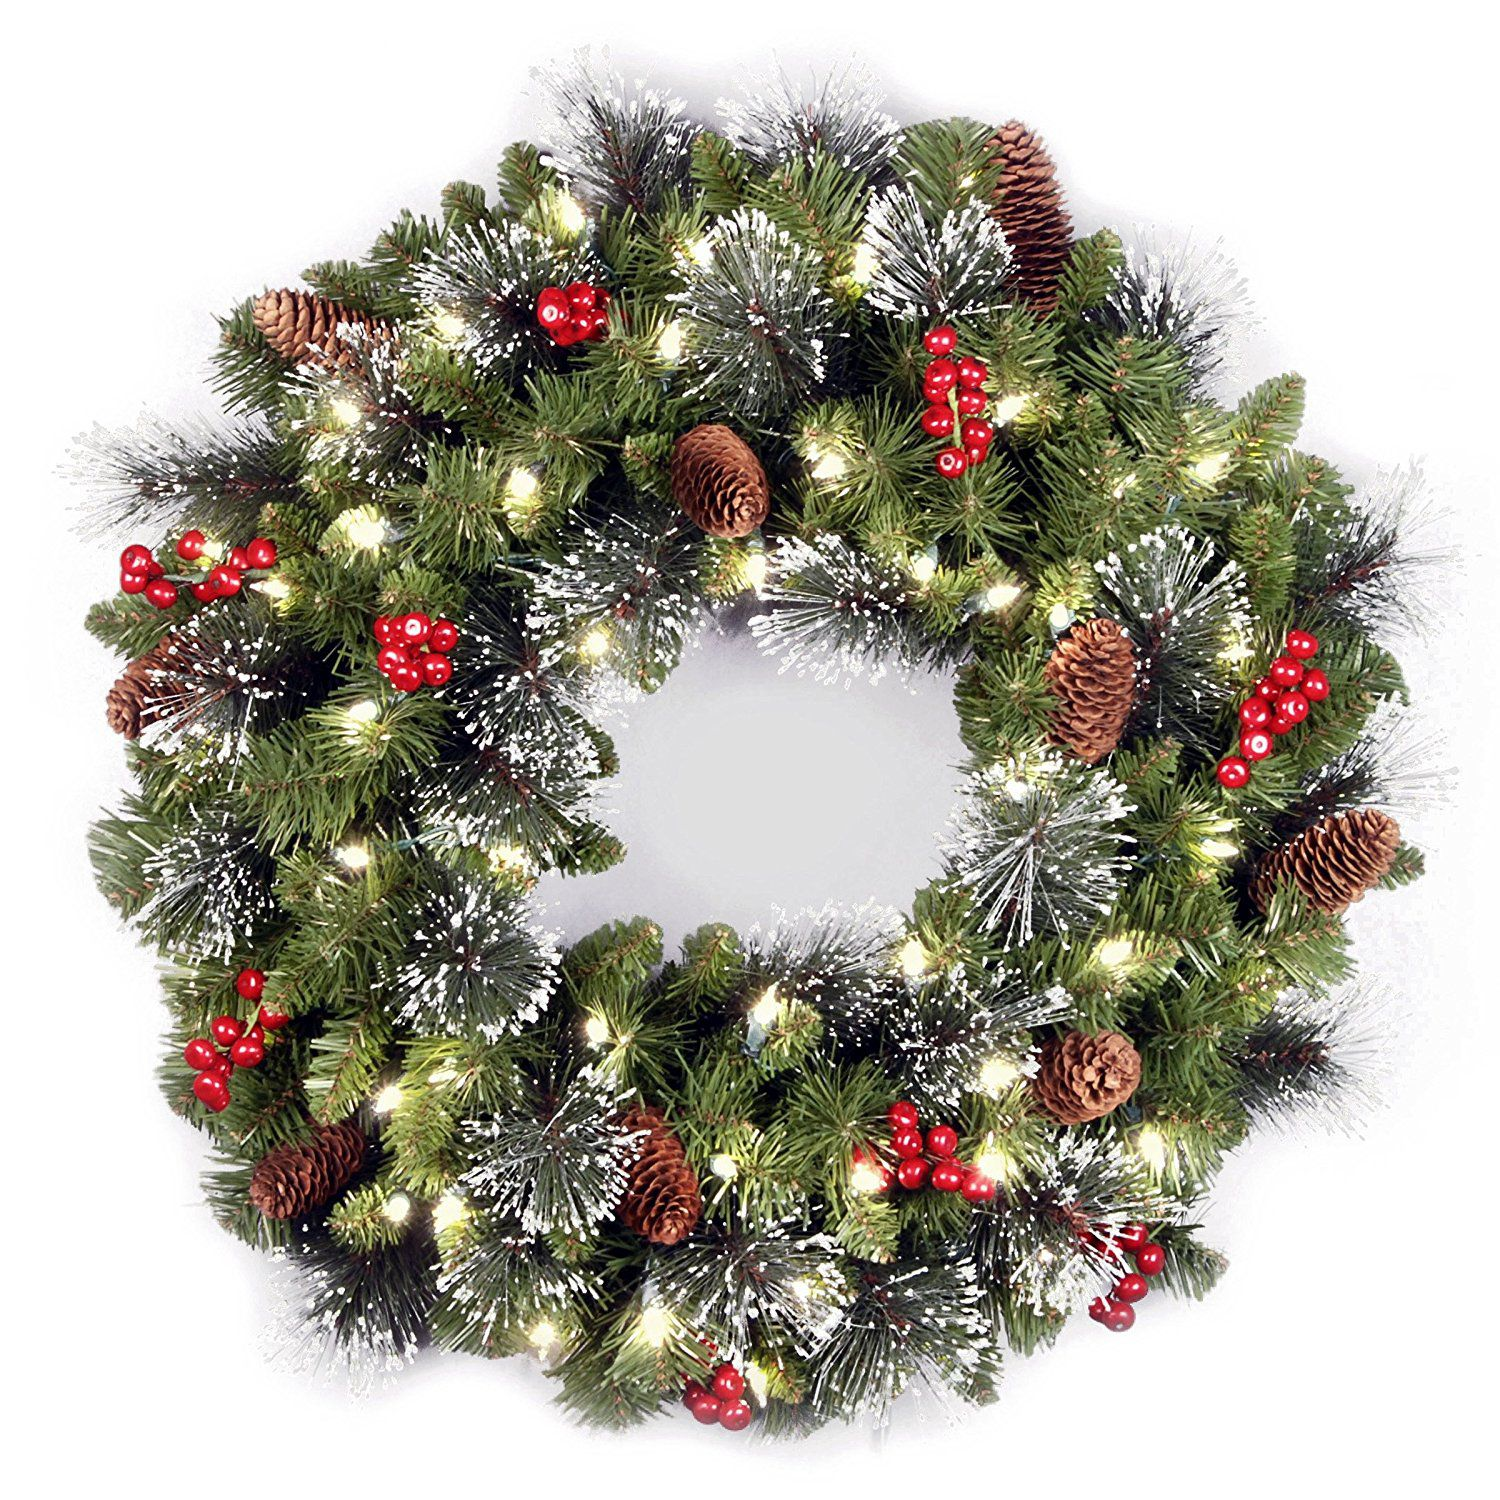 9 Best Holiday Decor Wreaths of 2019